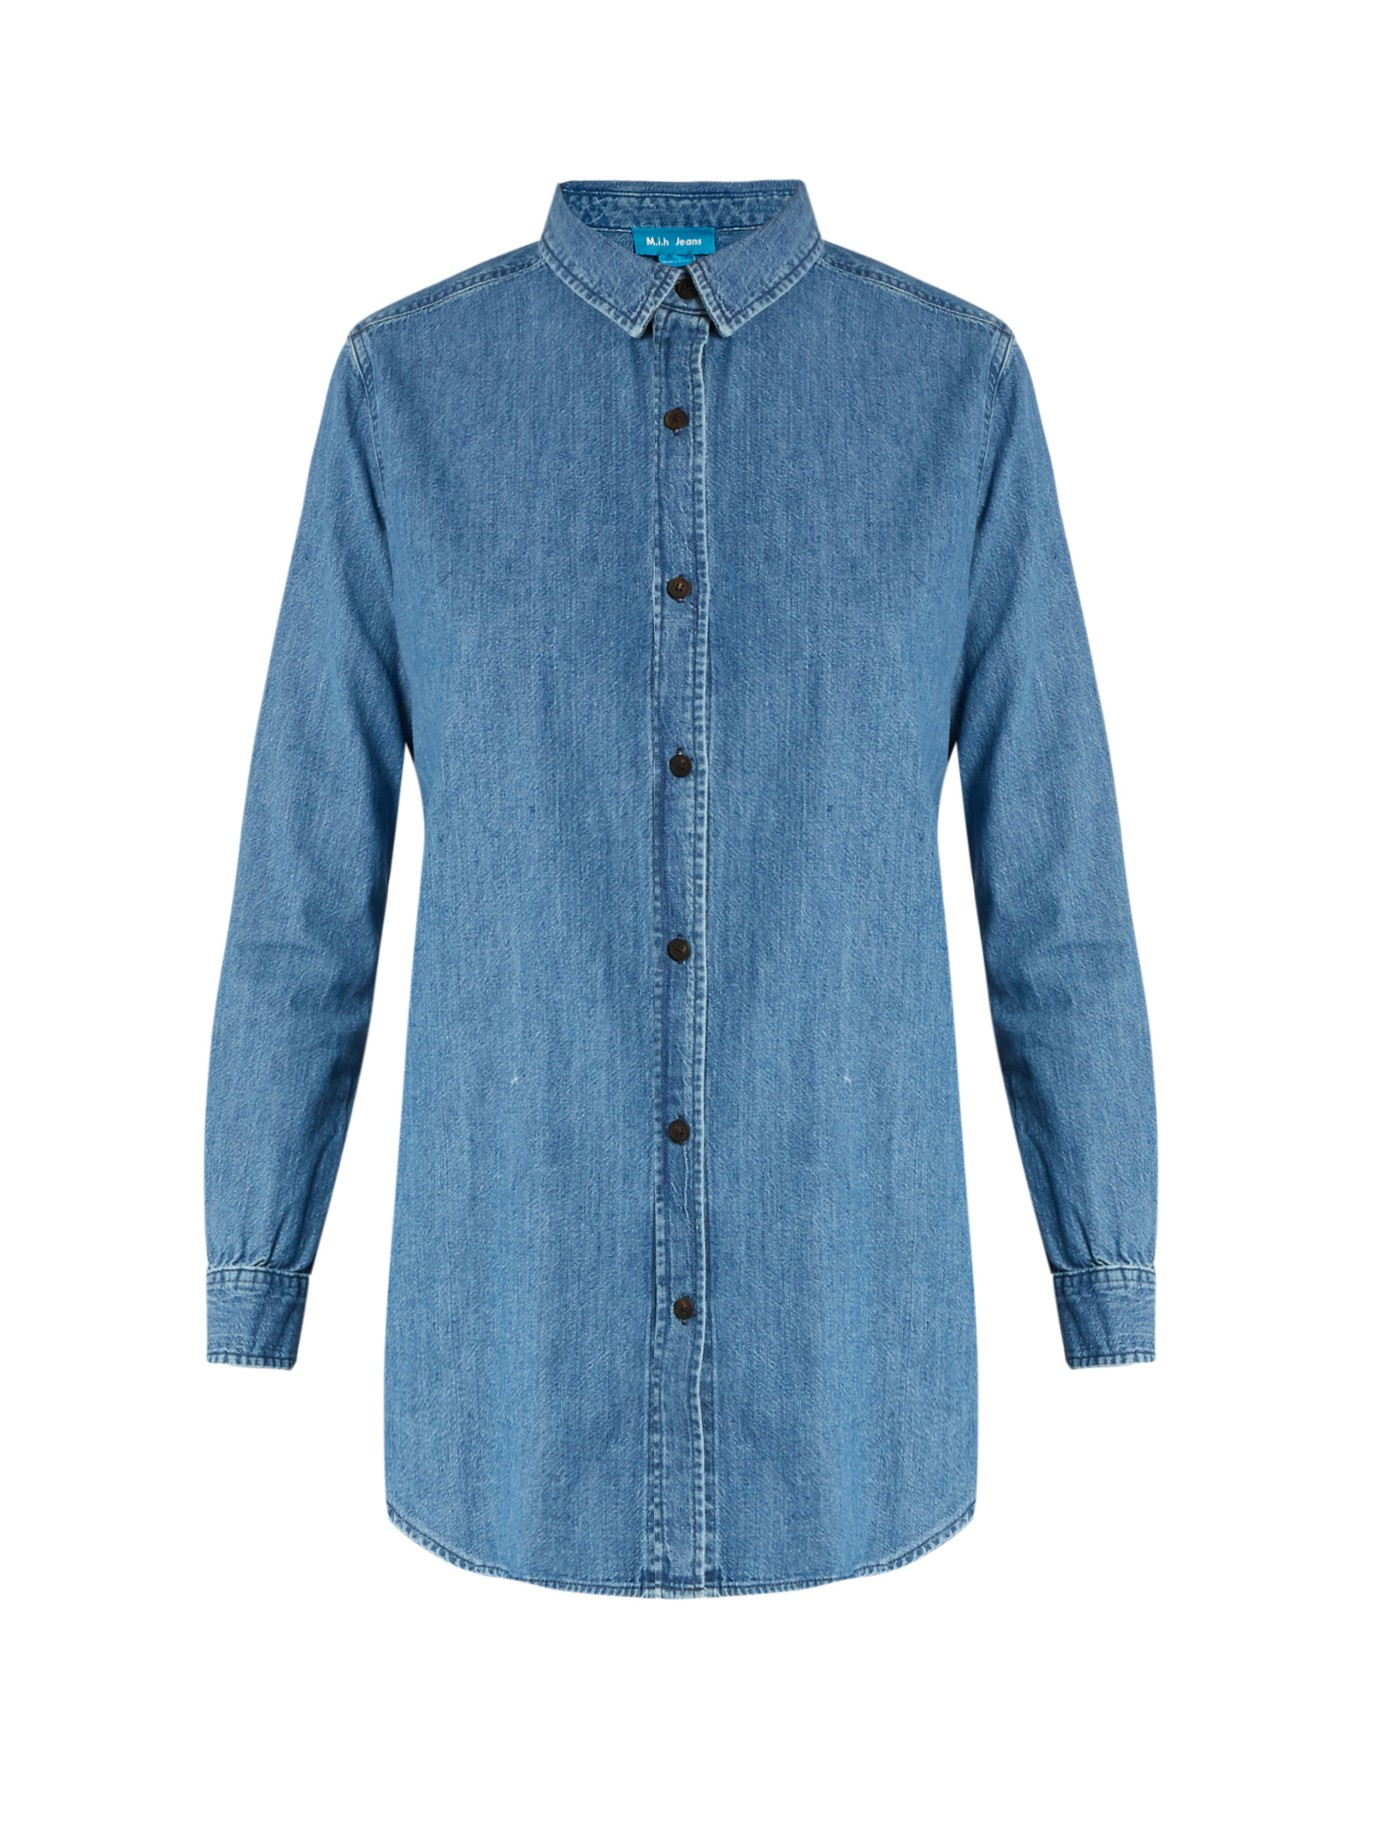 You searched for: star denim shirt! Etsy is the home to thousands of handmade, vintage, and one-of-a-kind products and gifts related to your search. No matter what you're looking for or where you are in the world, our global marketplace of sellers can help you find unique and affordable options. Let's get started!